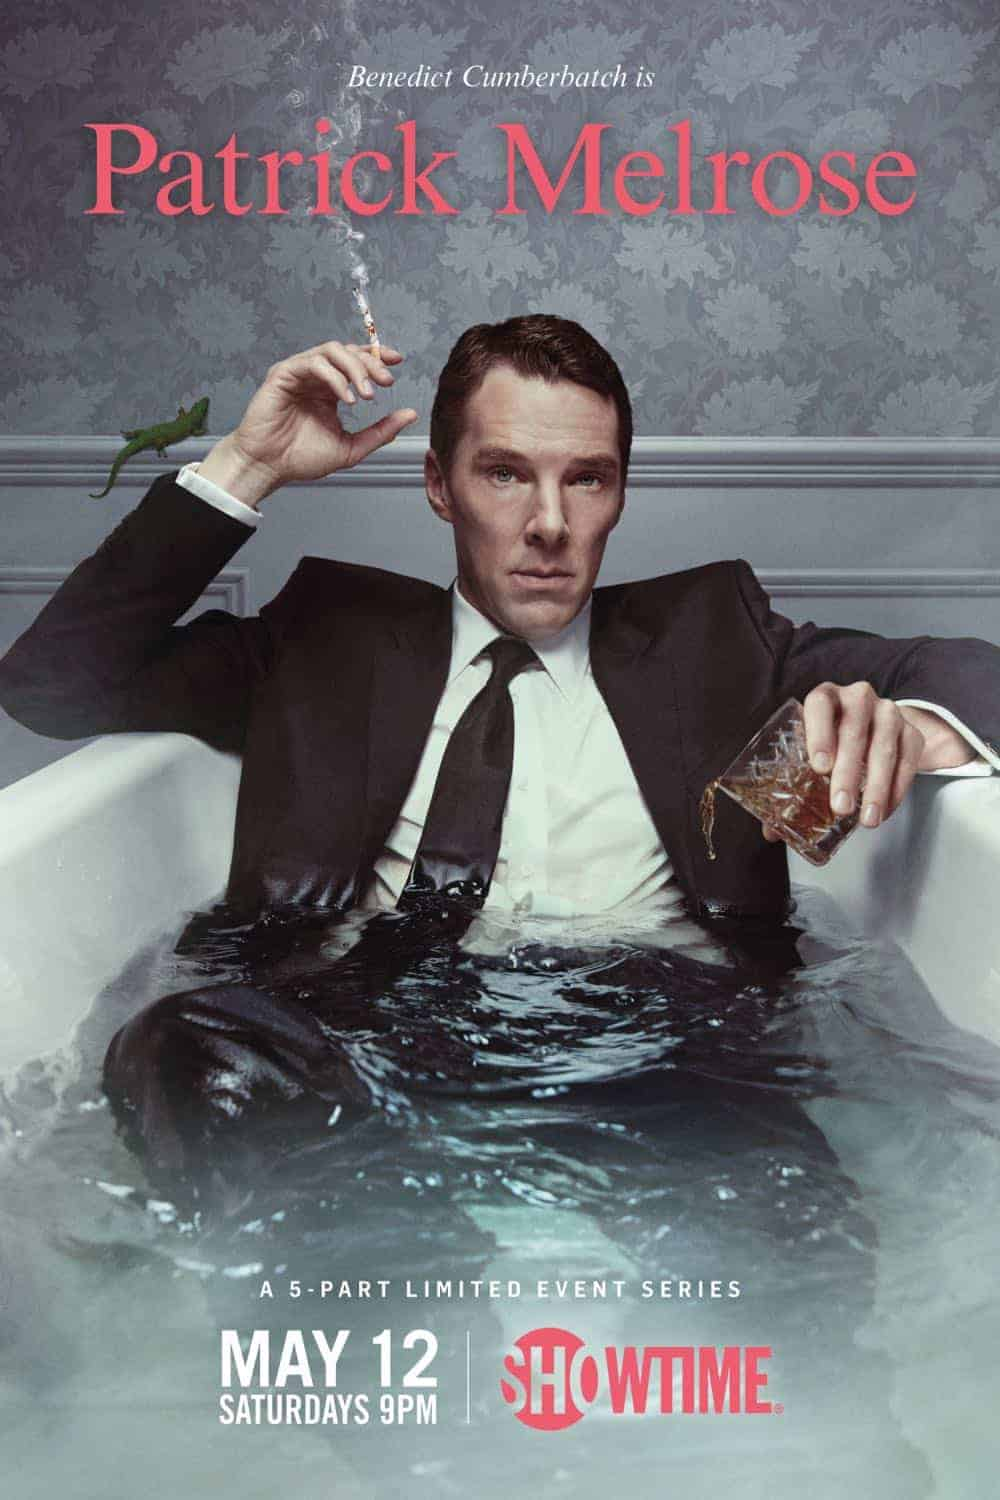 Benedict-Cumberbatch-Patrick-Melrose-Showtime-Poster